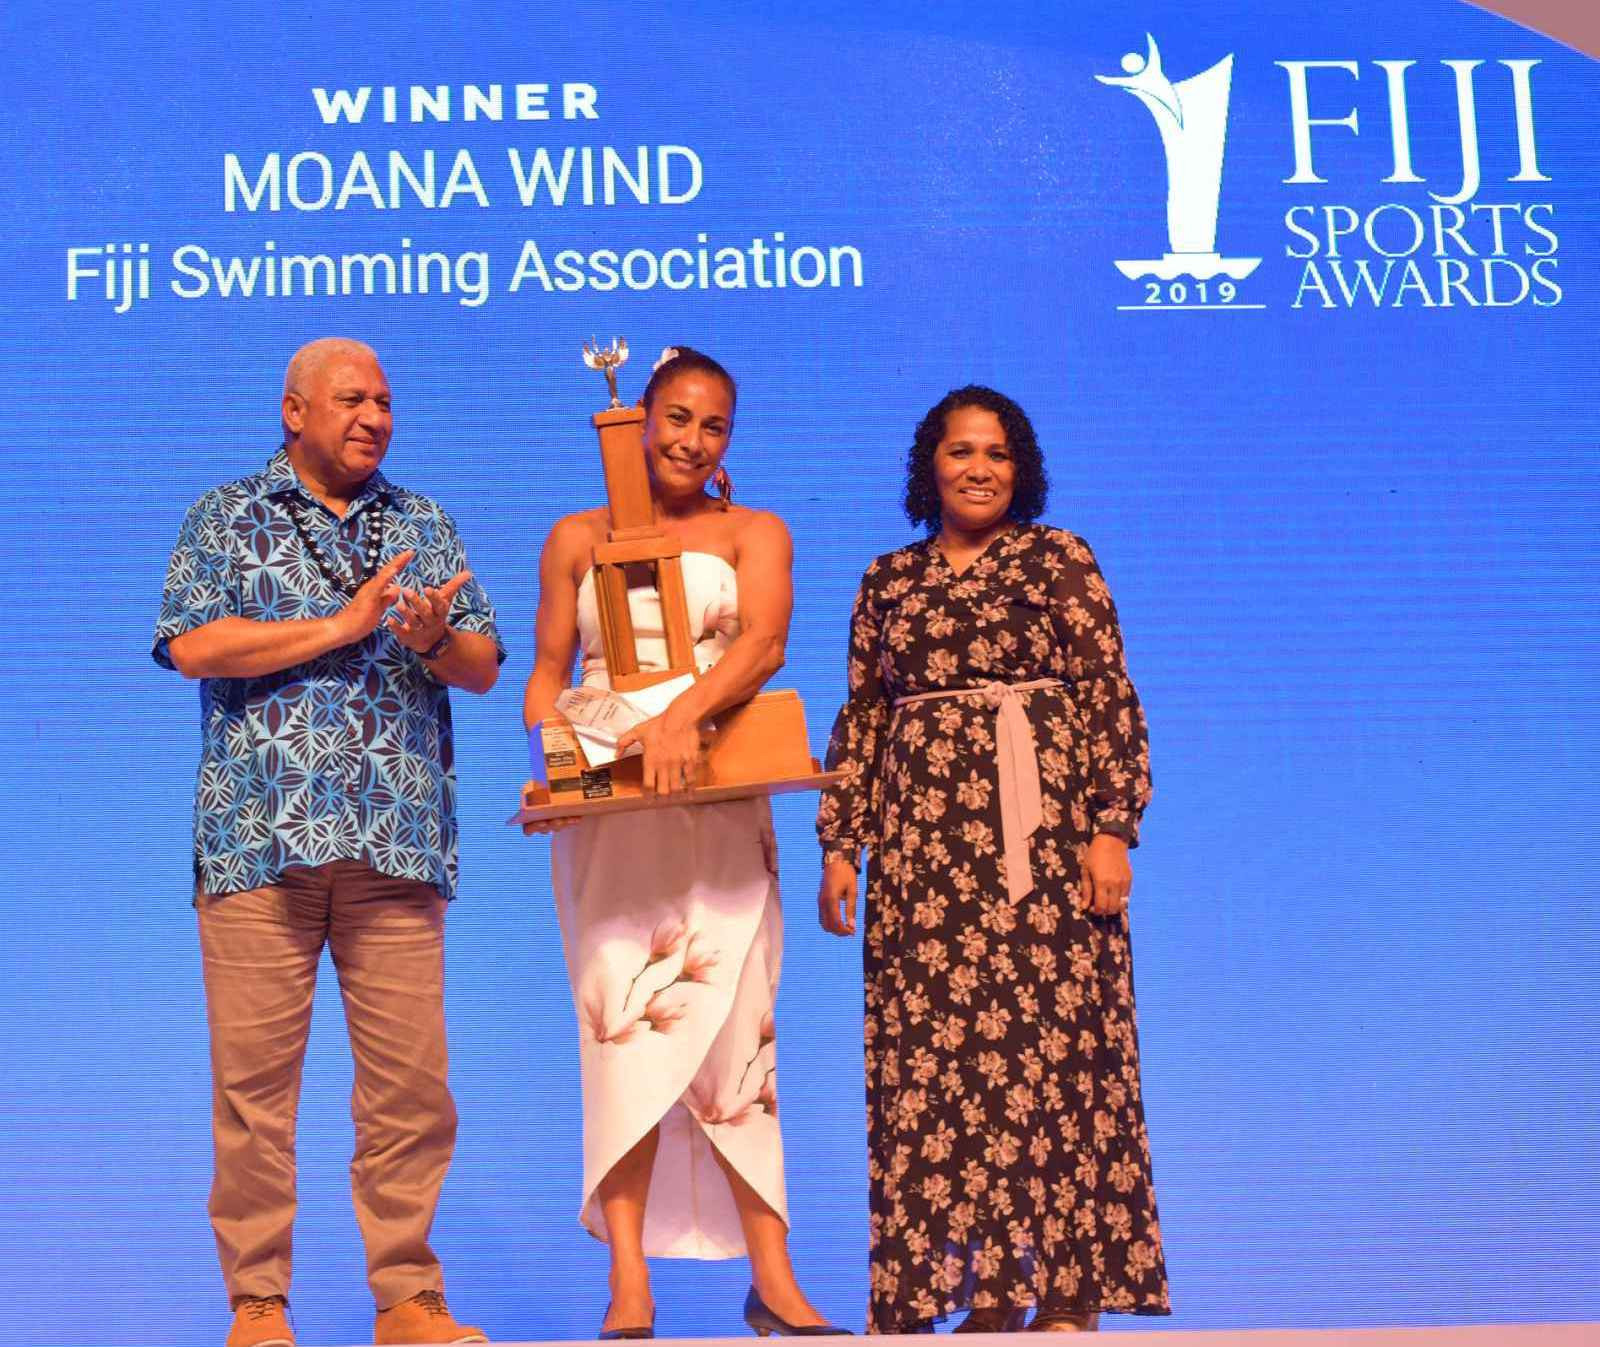 Fiji Sports Awards cancelled following COVID-19 disruption